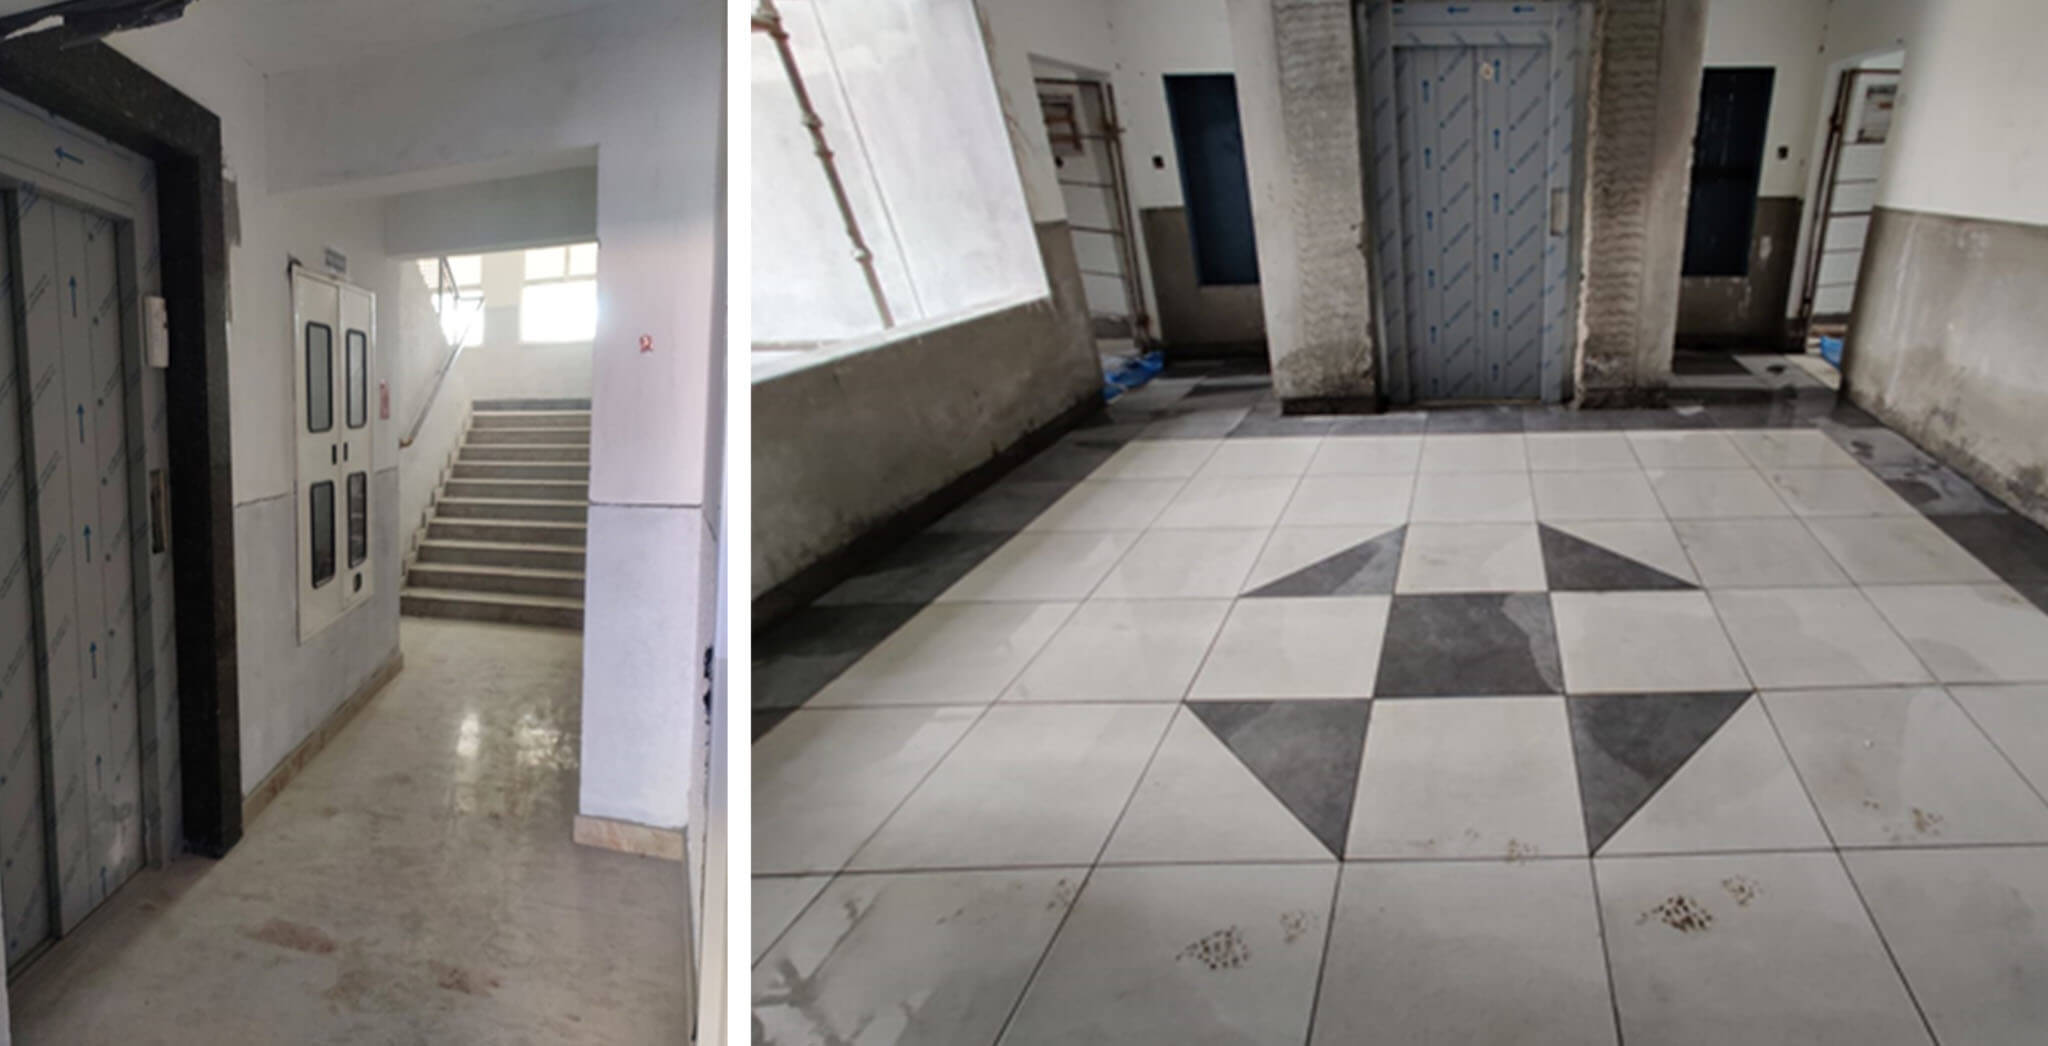 Feb 2021 - Lift lobby & staircase & common area: Work completed till 6th floor